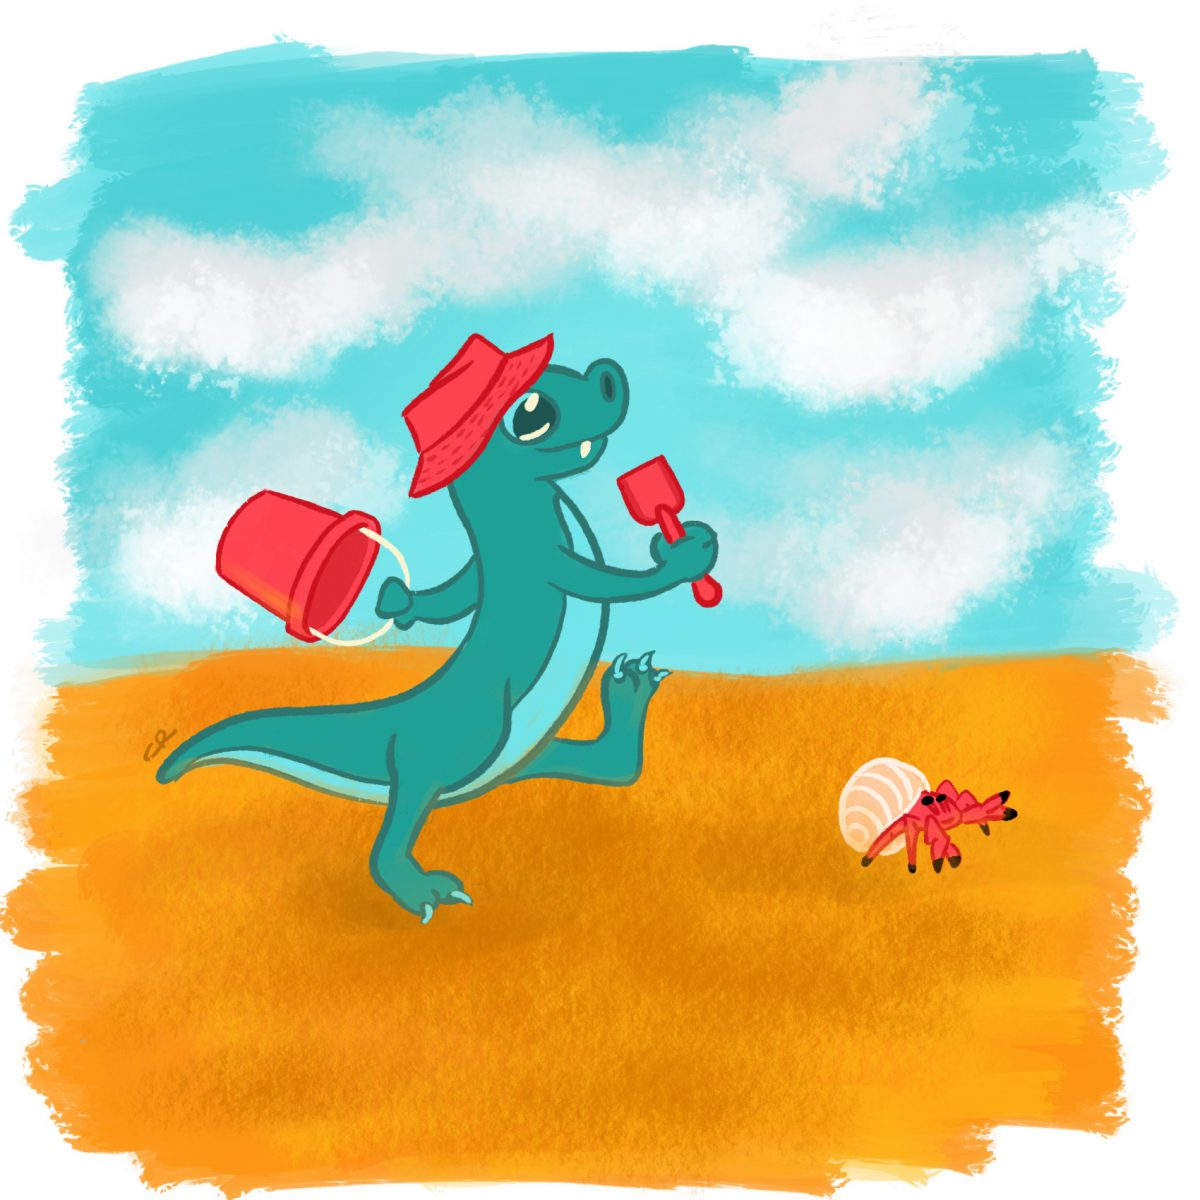 image of a dragon and a hermit crab walking on the beach